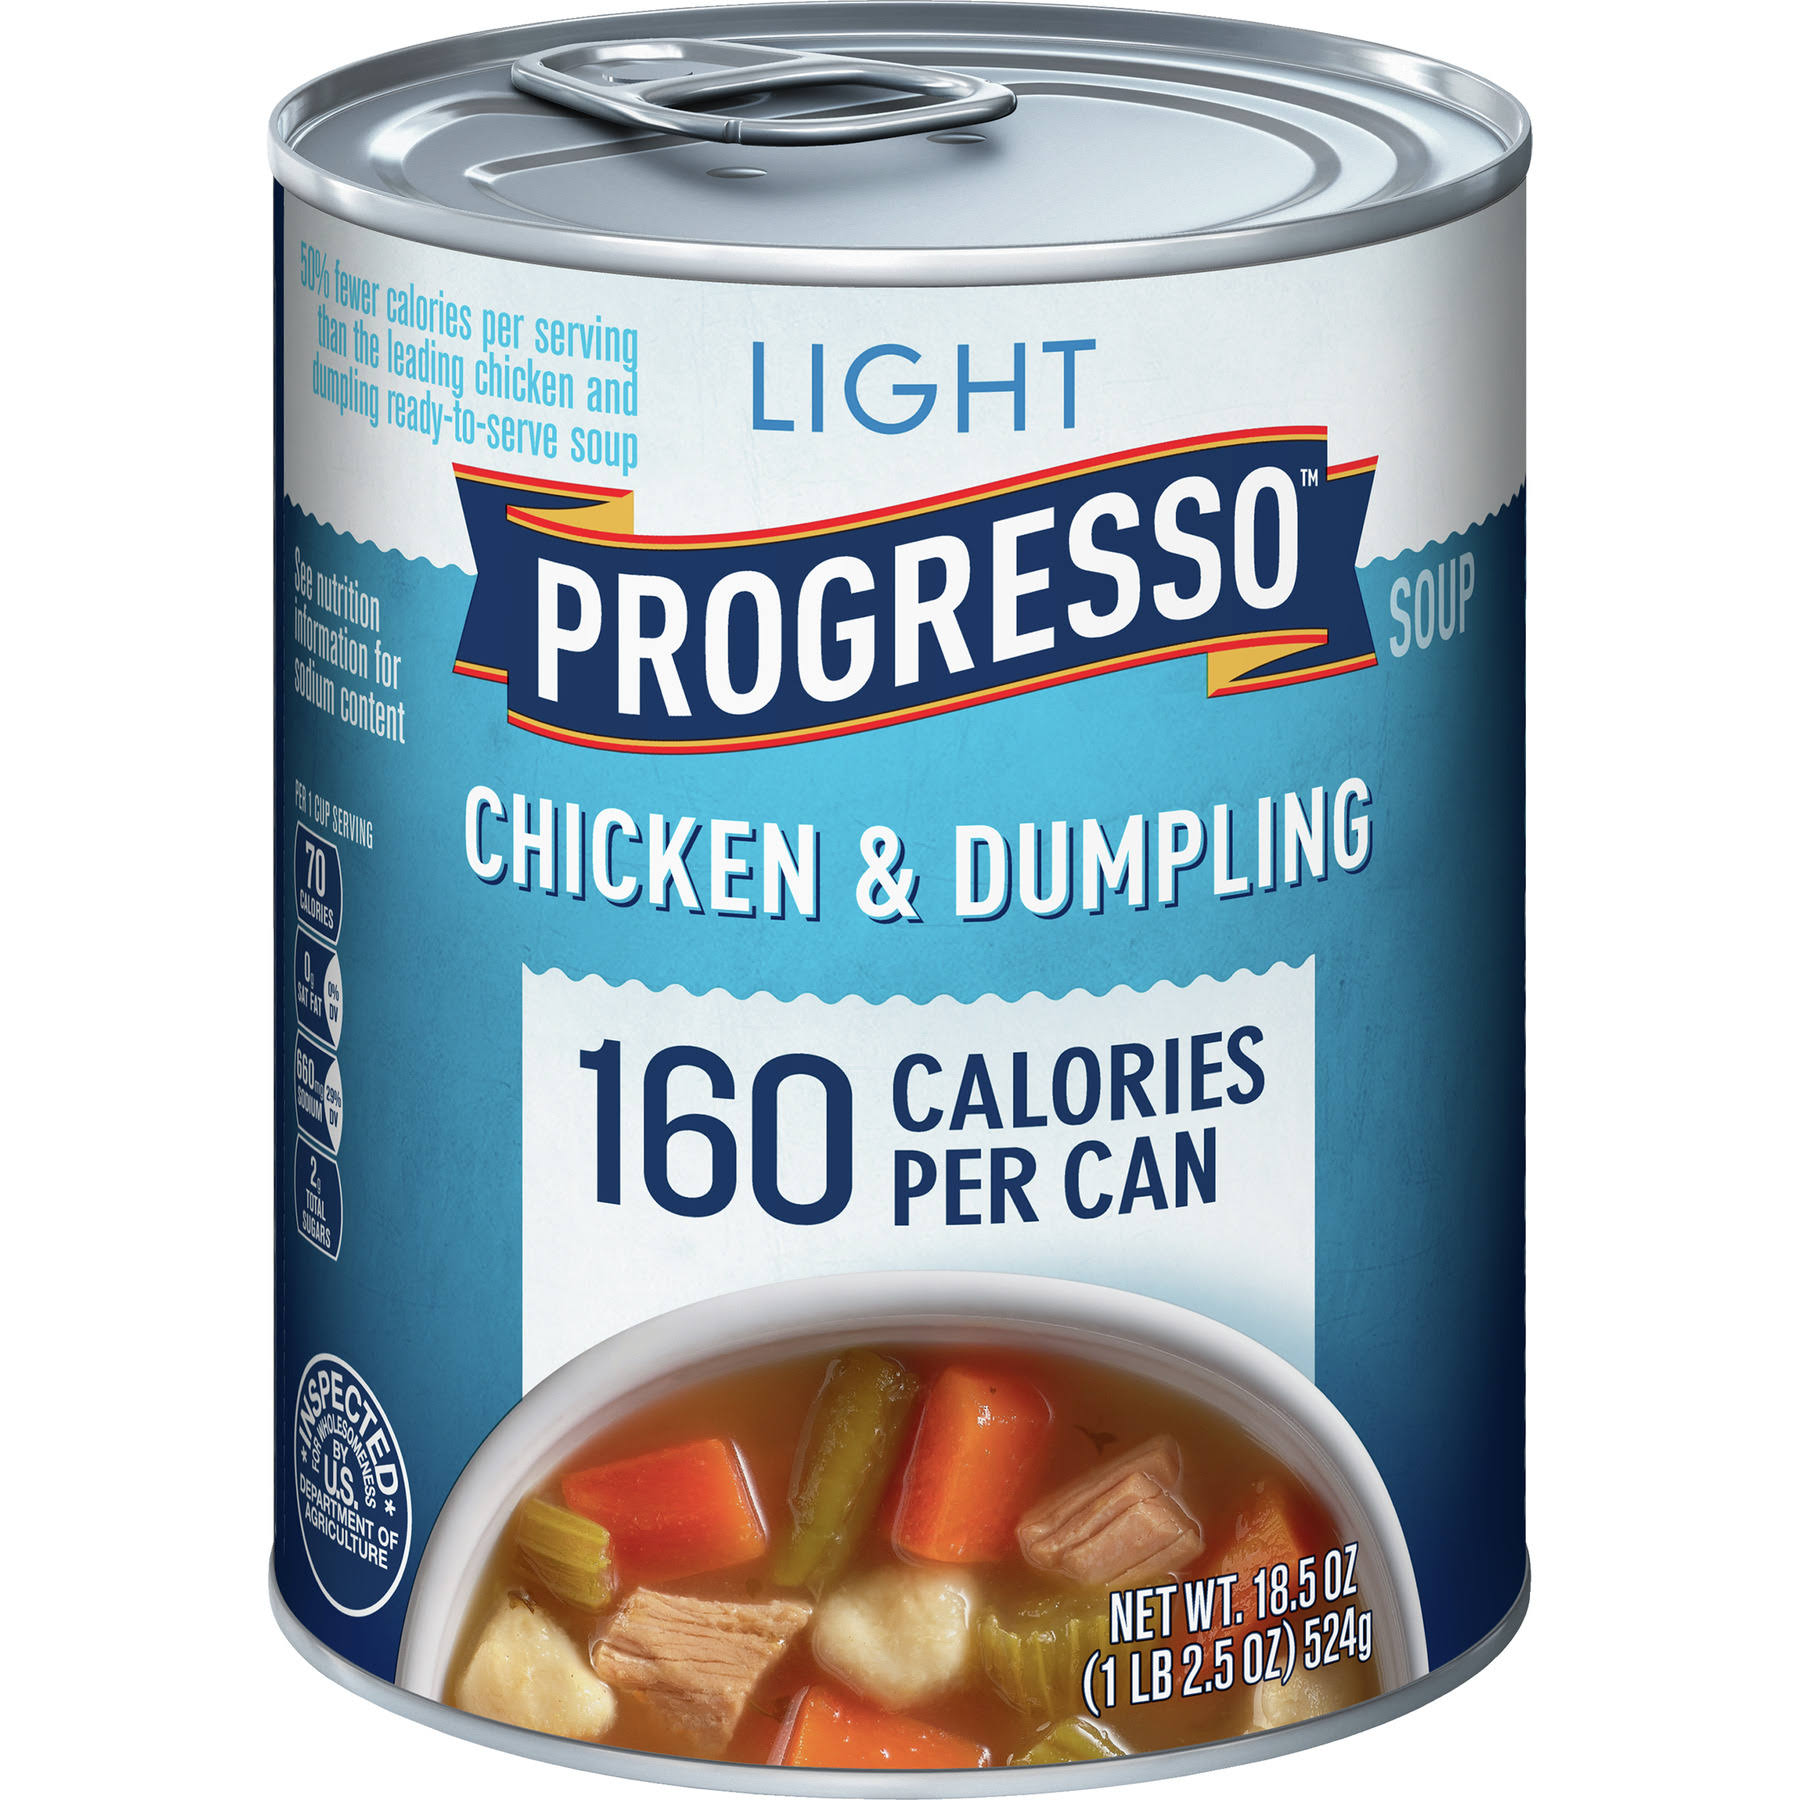 Progresso Light Soup - Chicken and Dumpling, 18.5oz Cans, Pack of 12